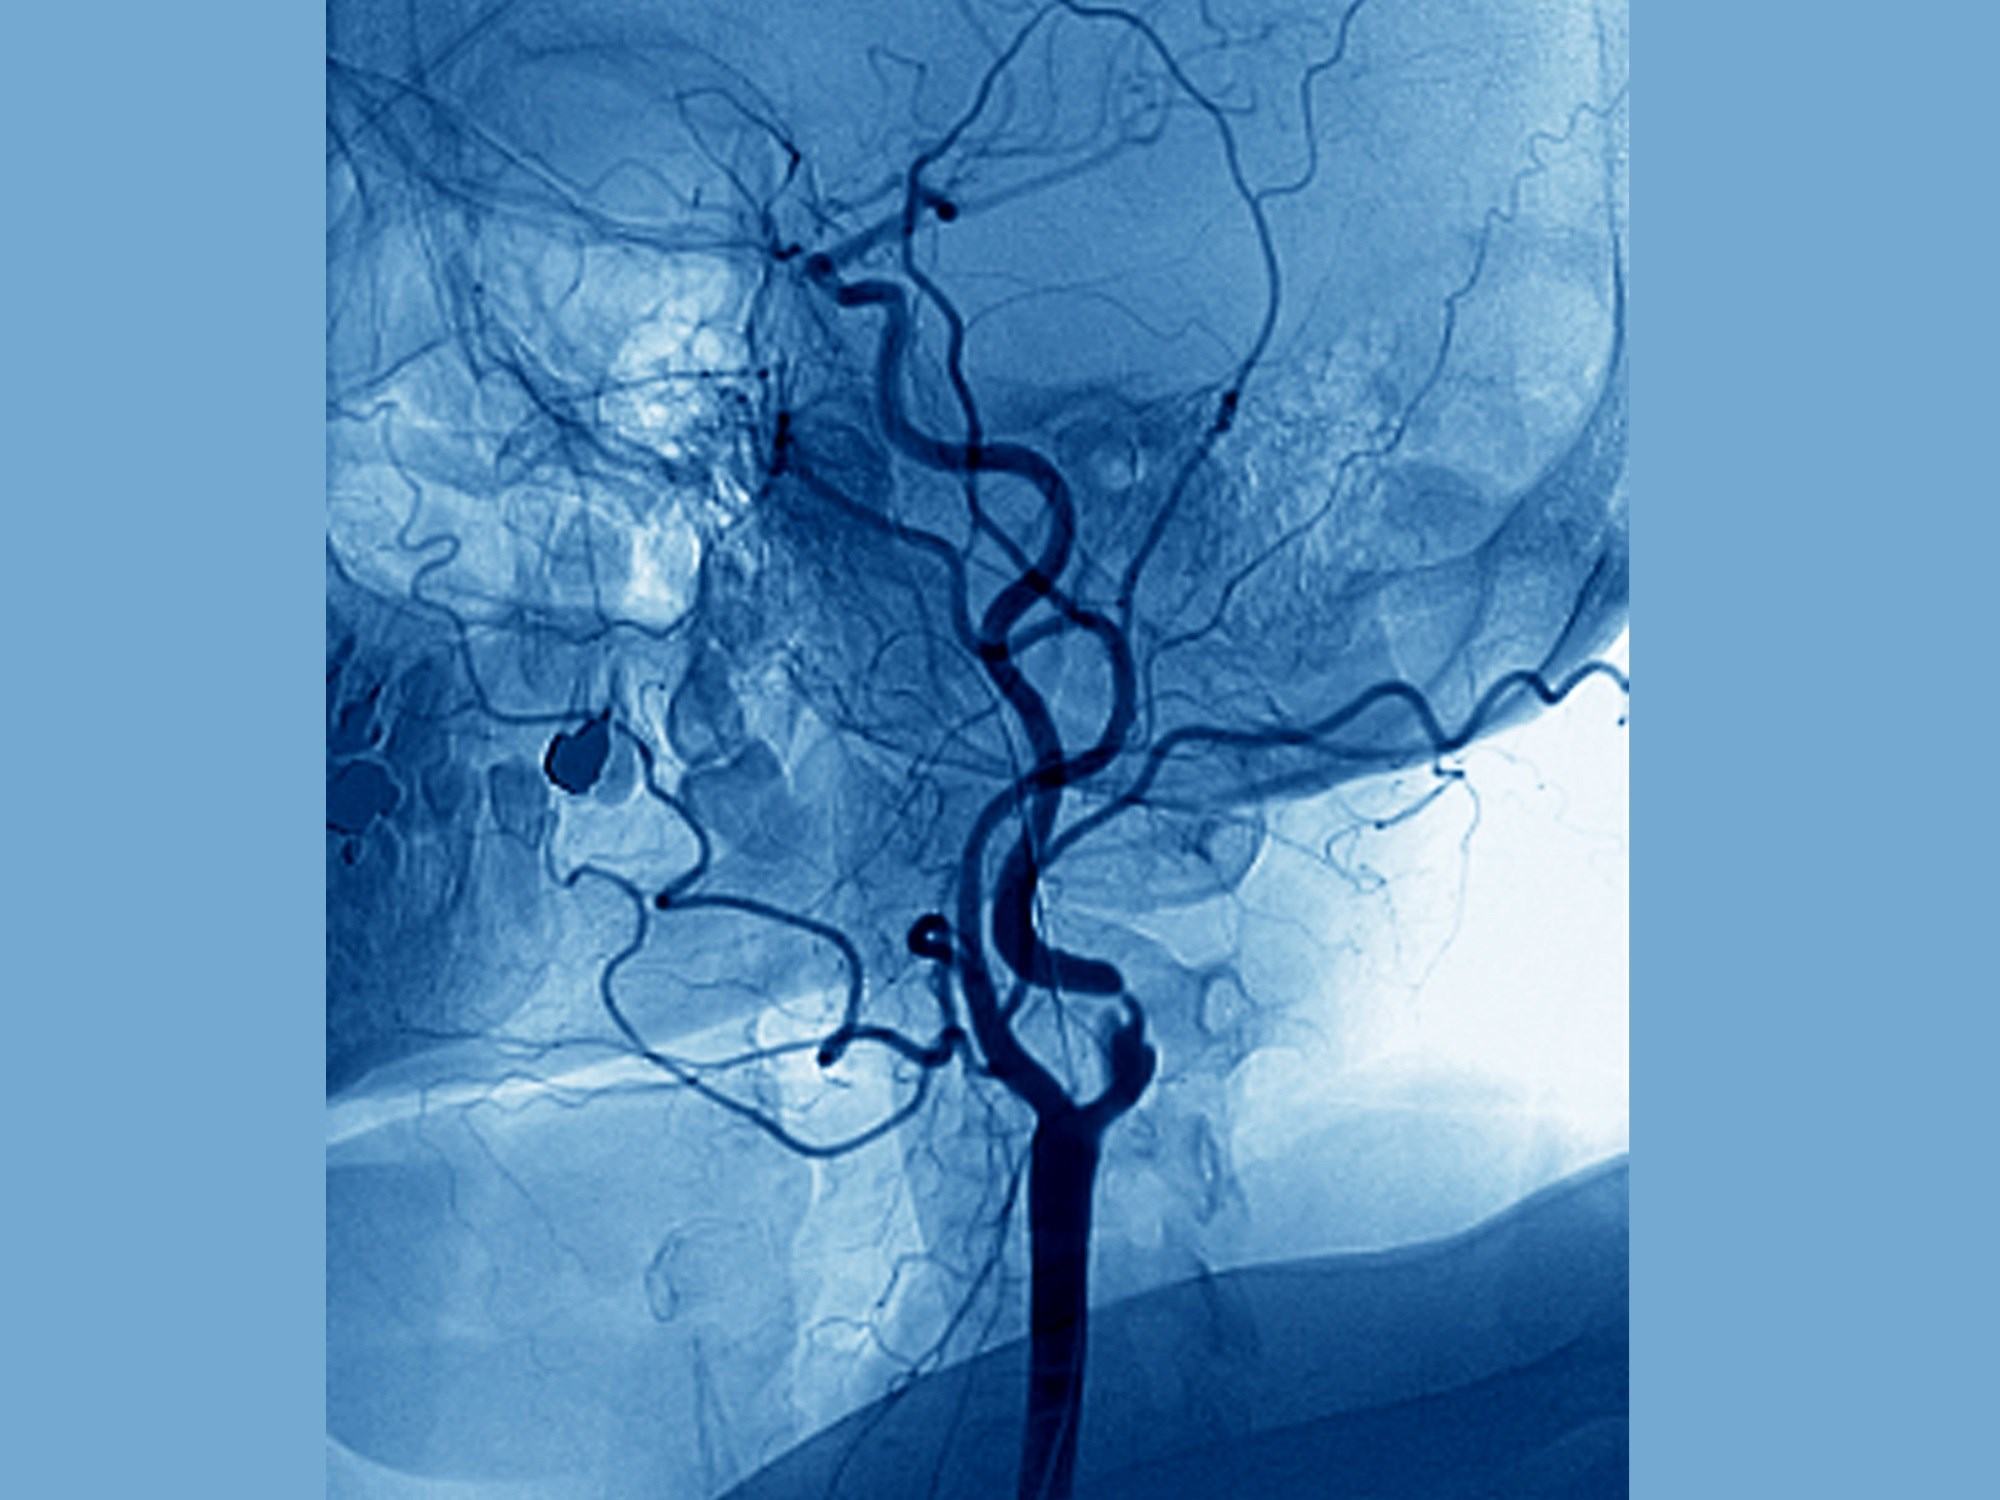 Researchers gauged incidence of new or worsened stroke, intracranial hemorrhage, and death as main complications of patients with moderate to severe strokes who underwent urgent carotid intervention.